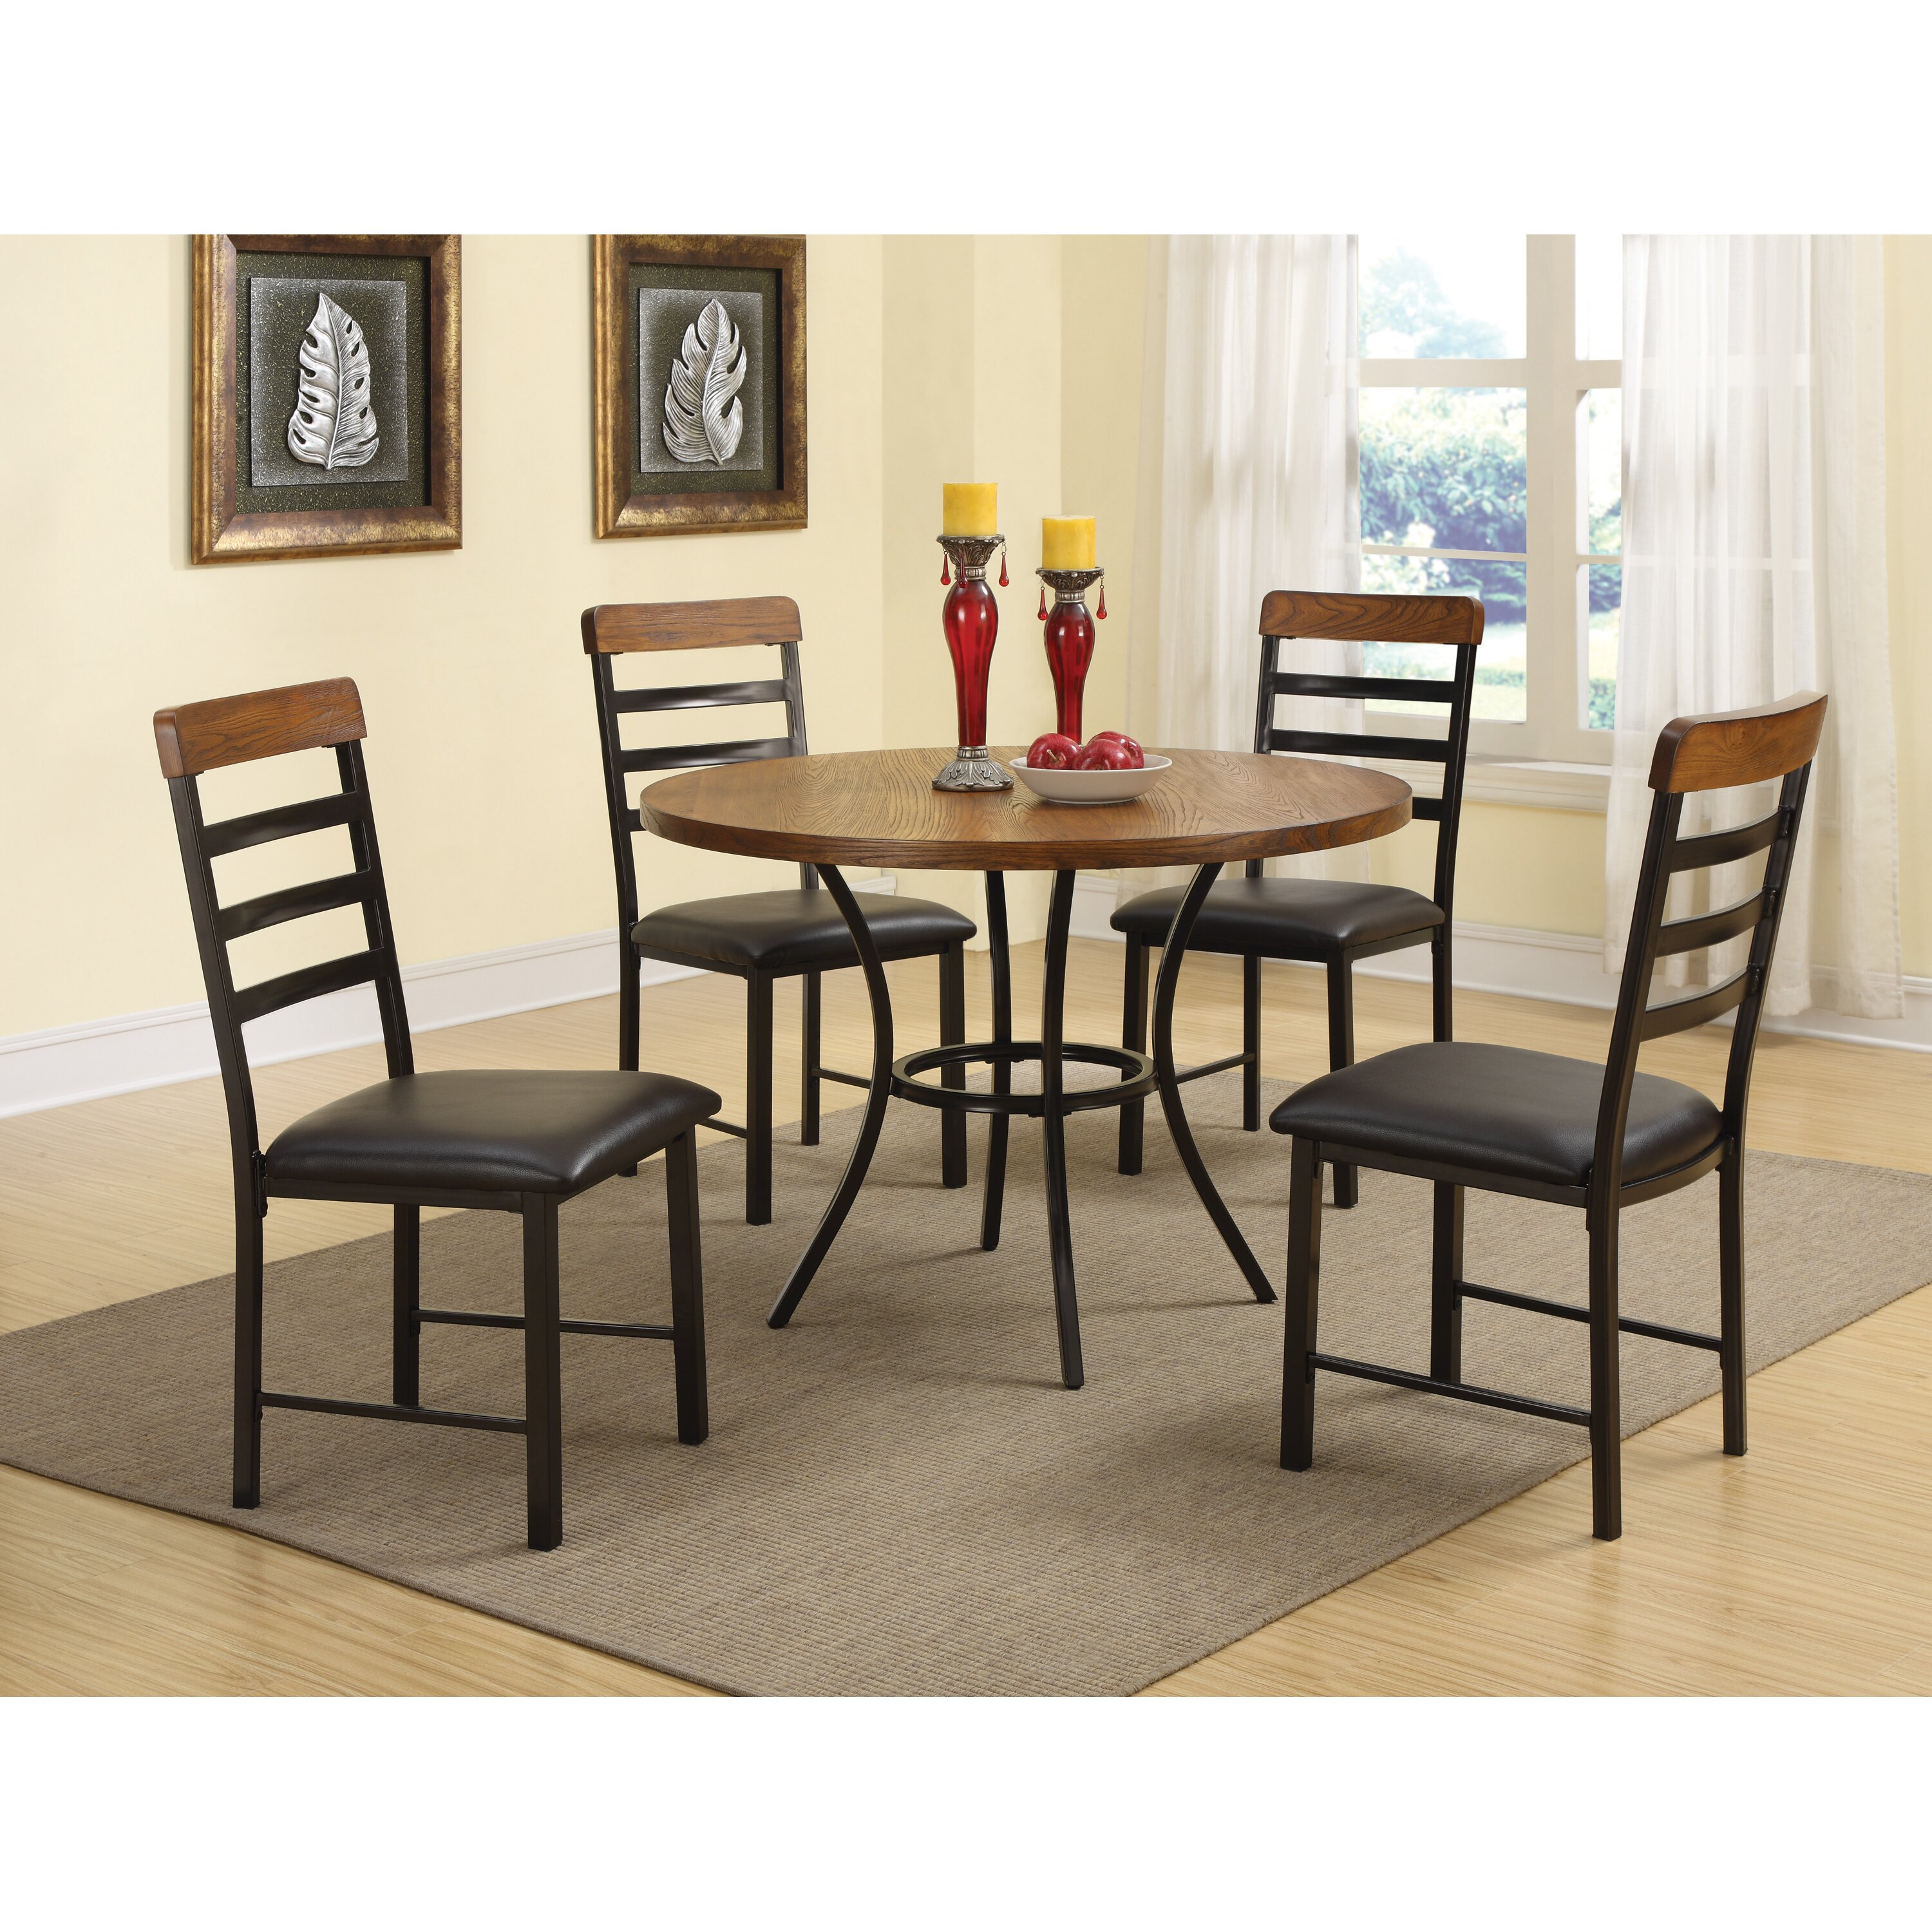 Wildon Home 5 Piece Dining Table Set Reviews Wayfair